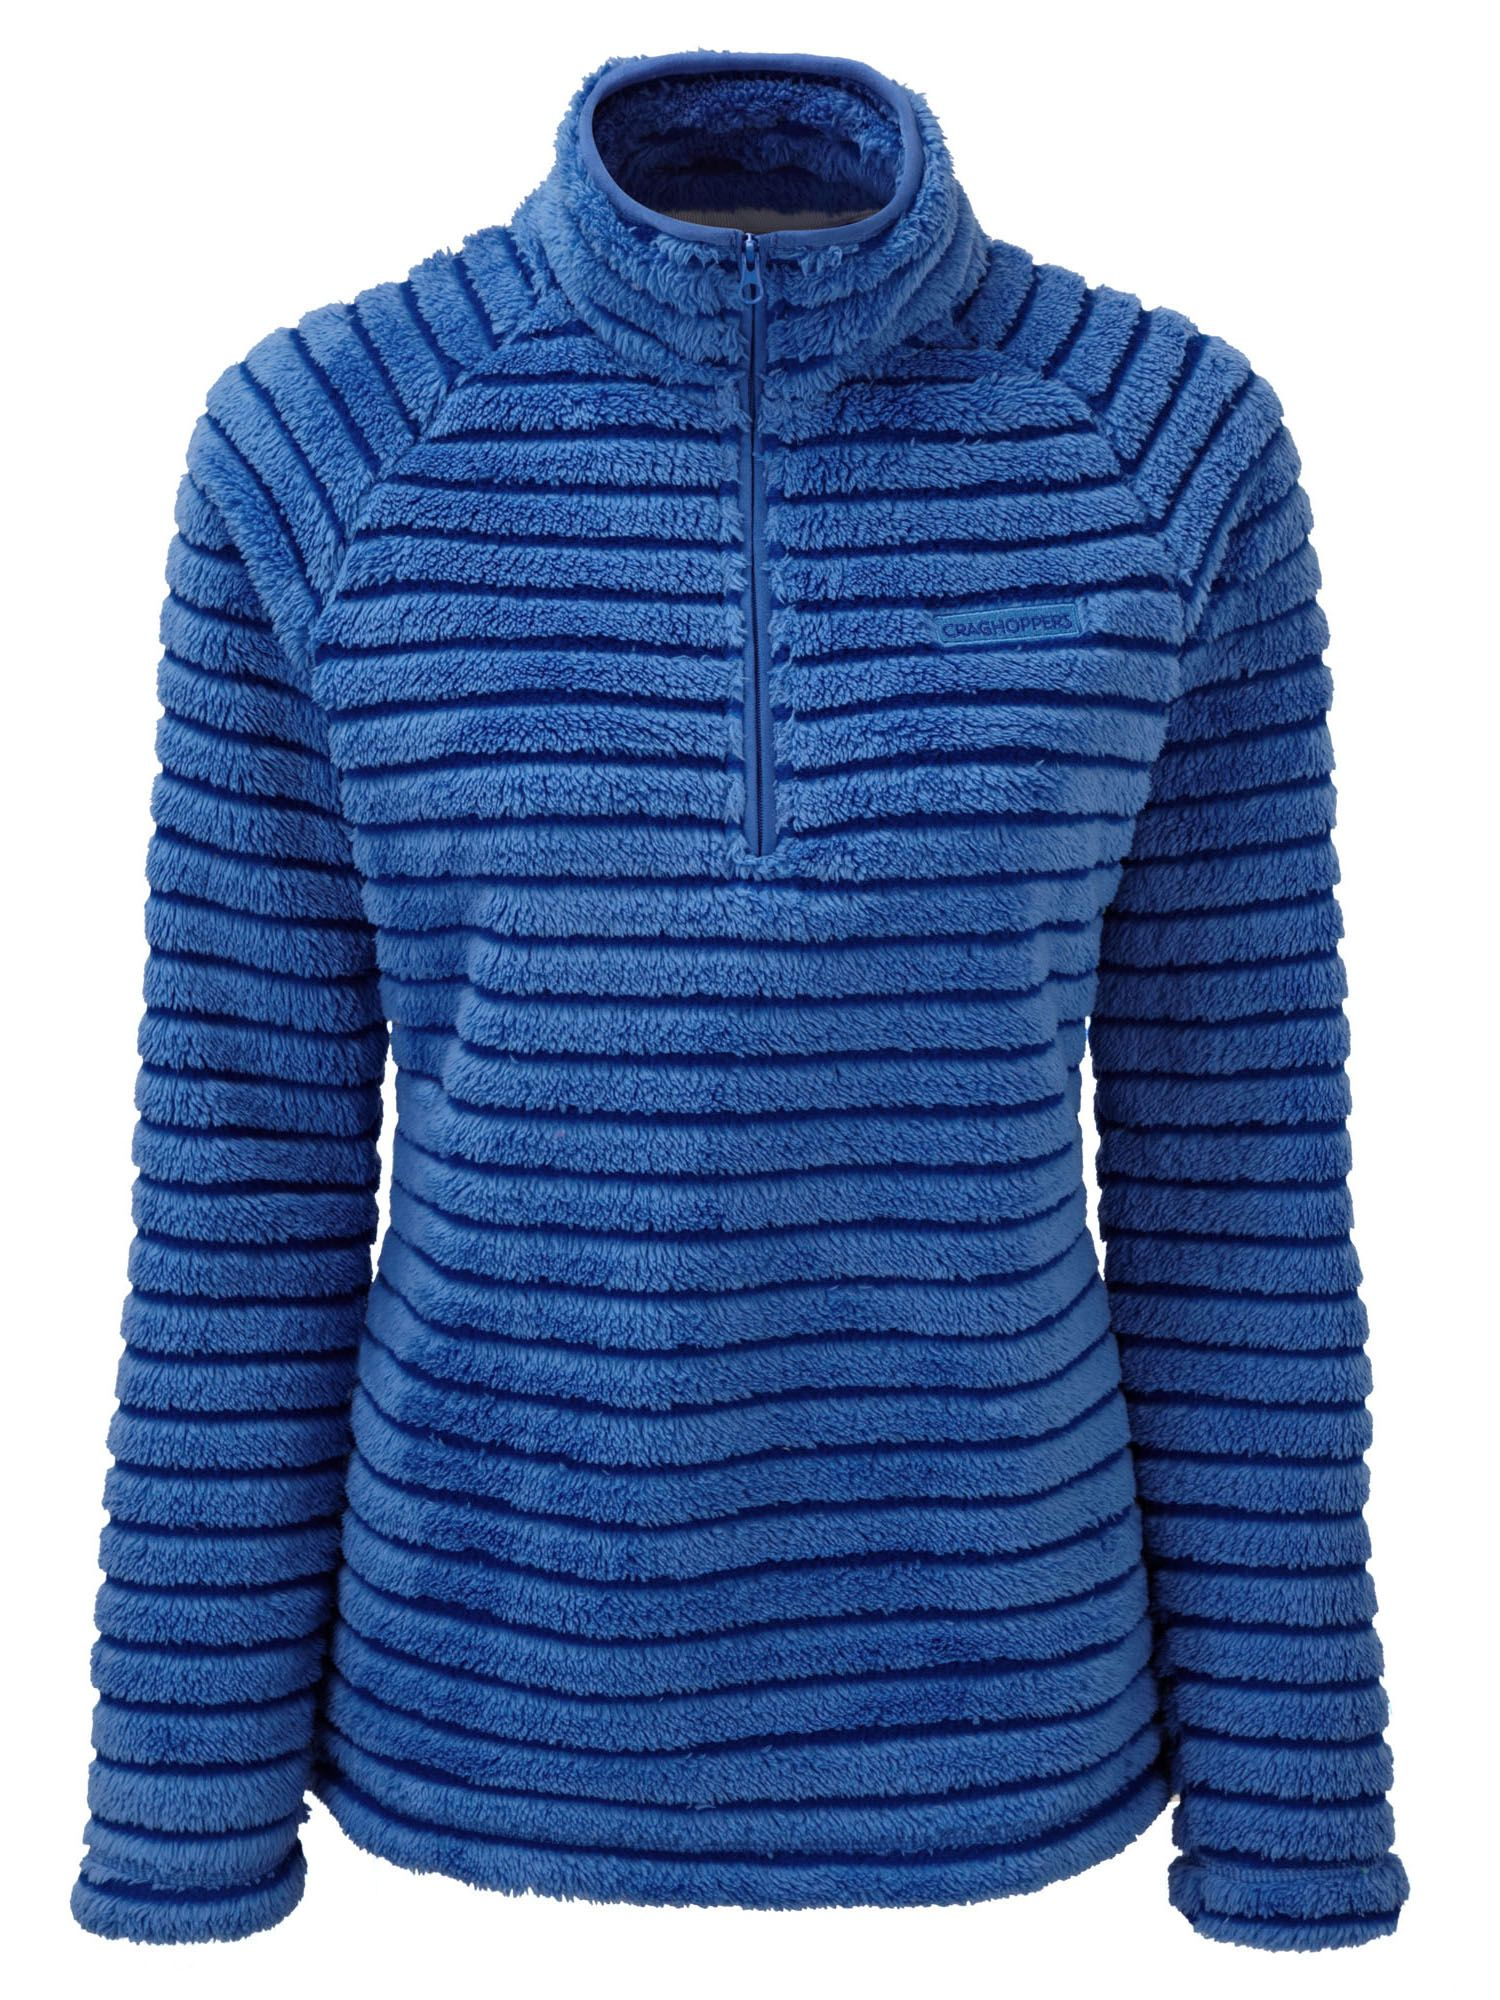 Craghoppers Appleby Half Zip Insulating Fleece, Blue